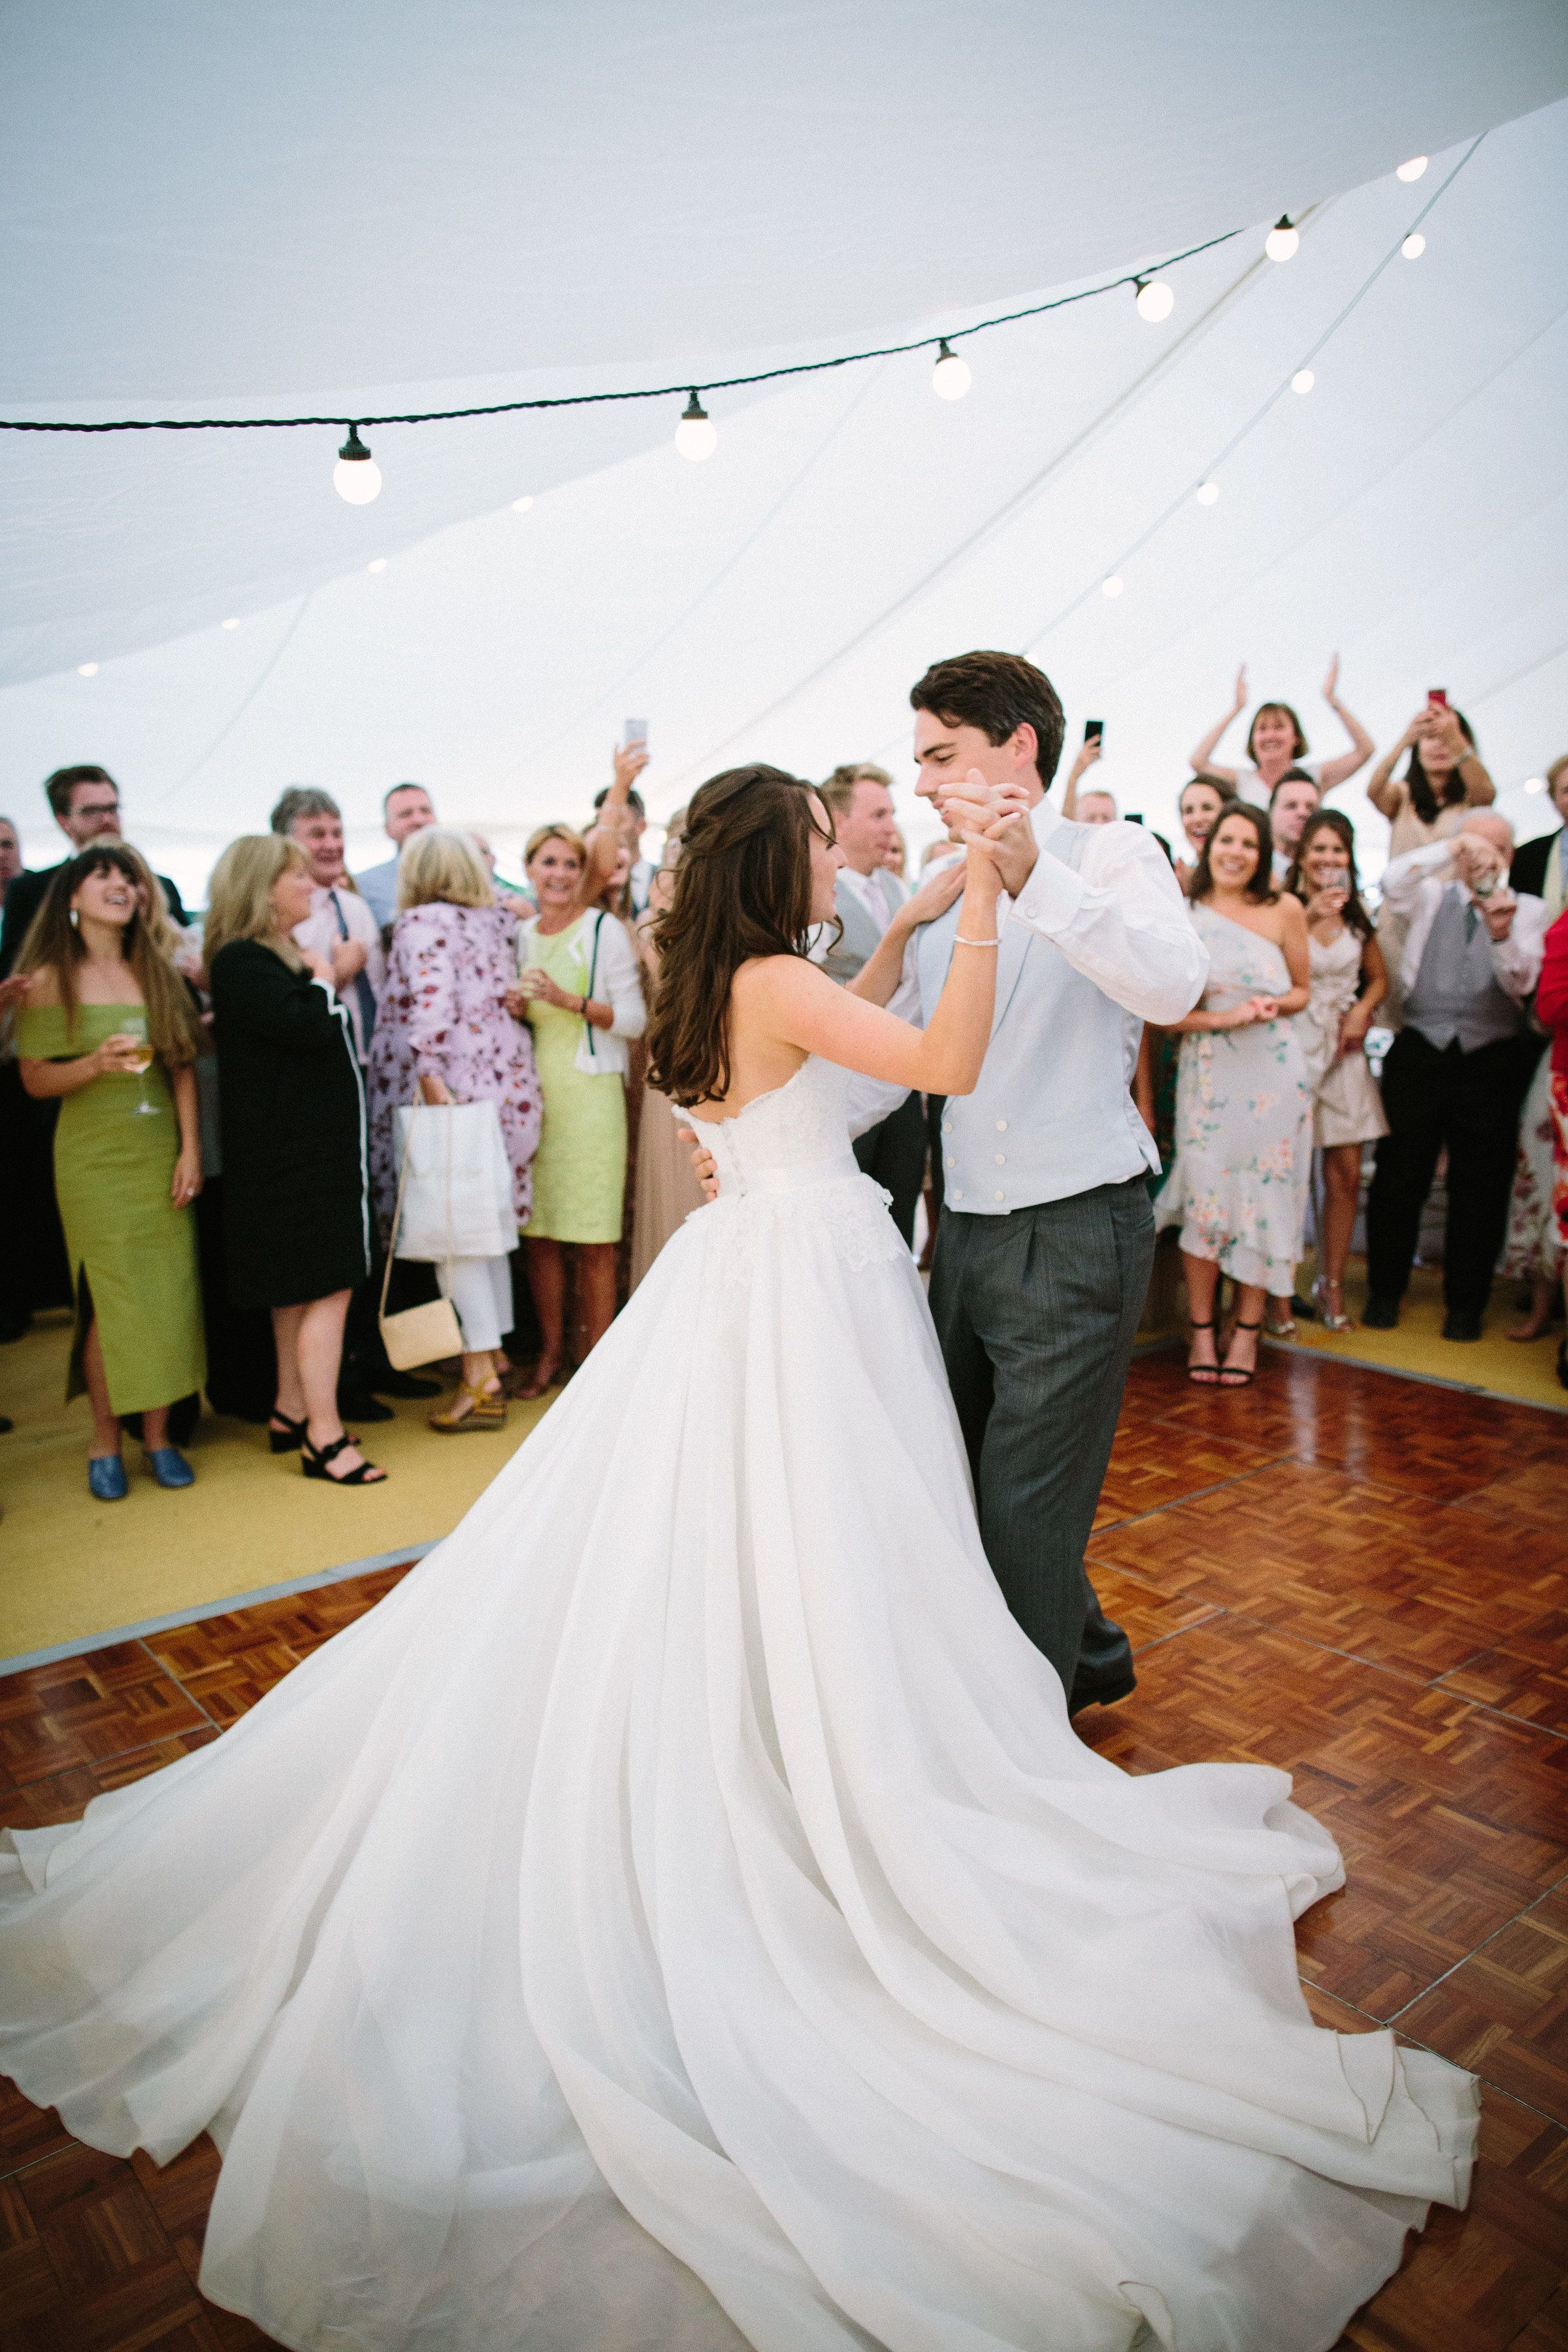 Stansted House Wedding Venue Chichester In 2020 Wedding Elegant Couple Timeless Wedding